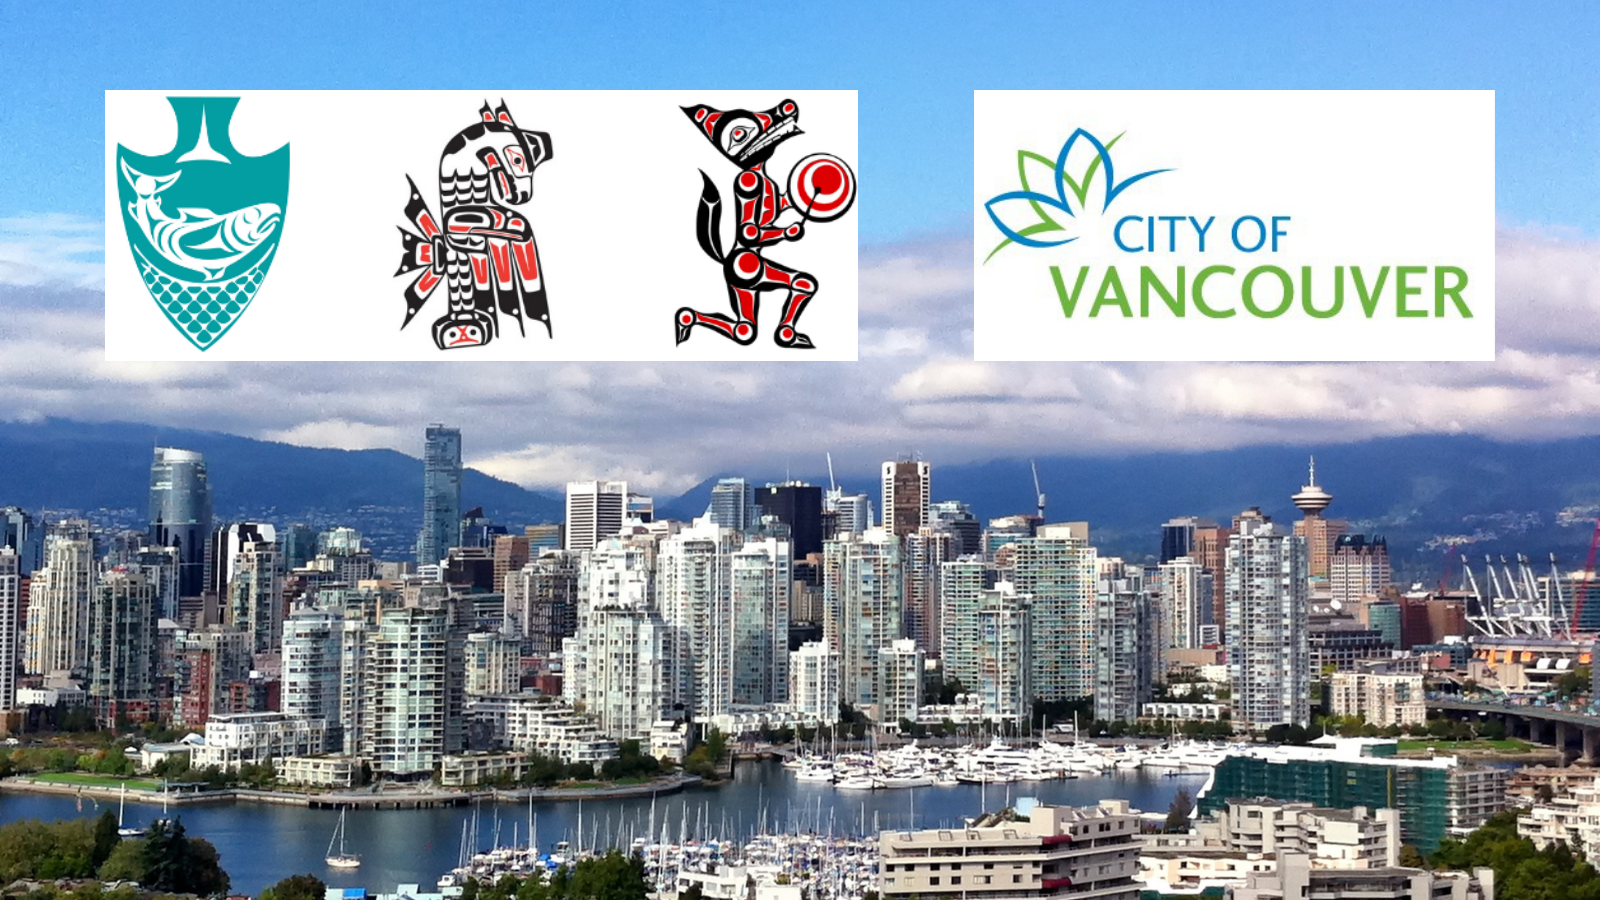 vancouver skyline with musqueam squamish tsleil-waututh and city of vancouver logos